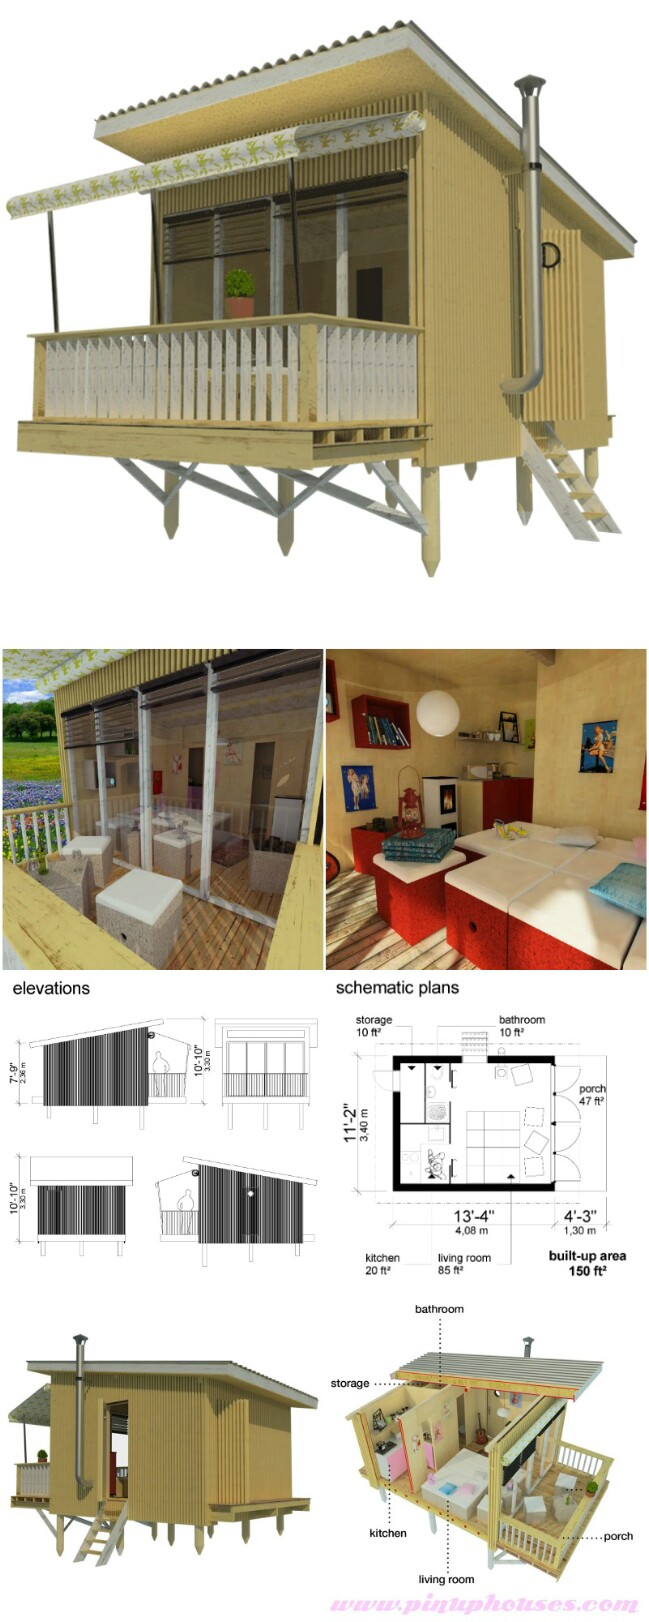 25 plans to build your own fully customized tiny house on for Homes on budget com